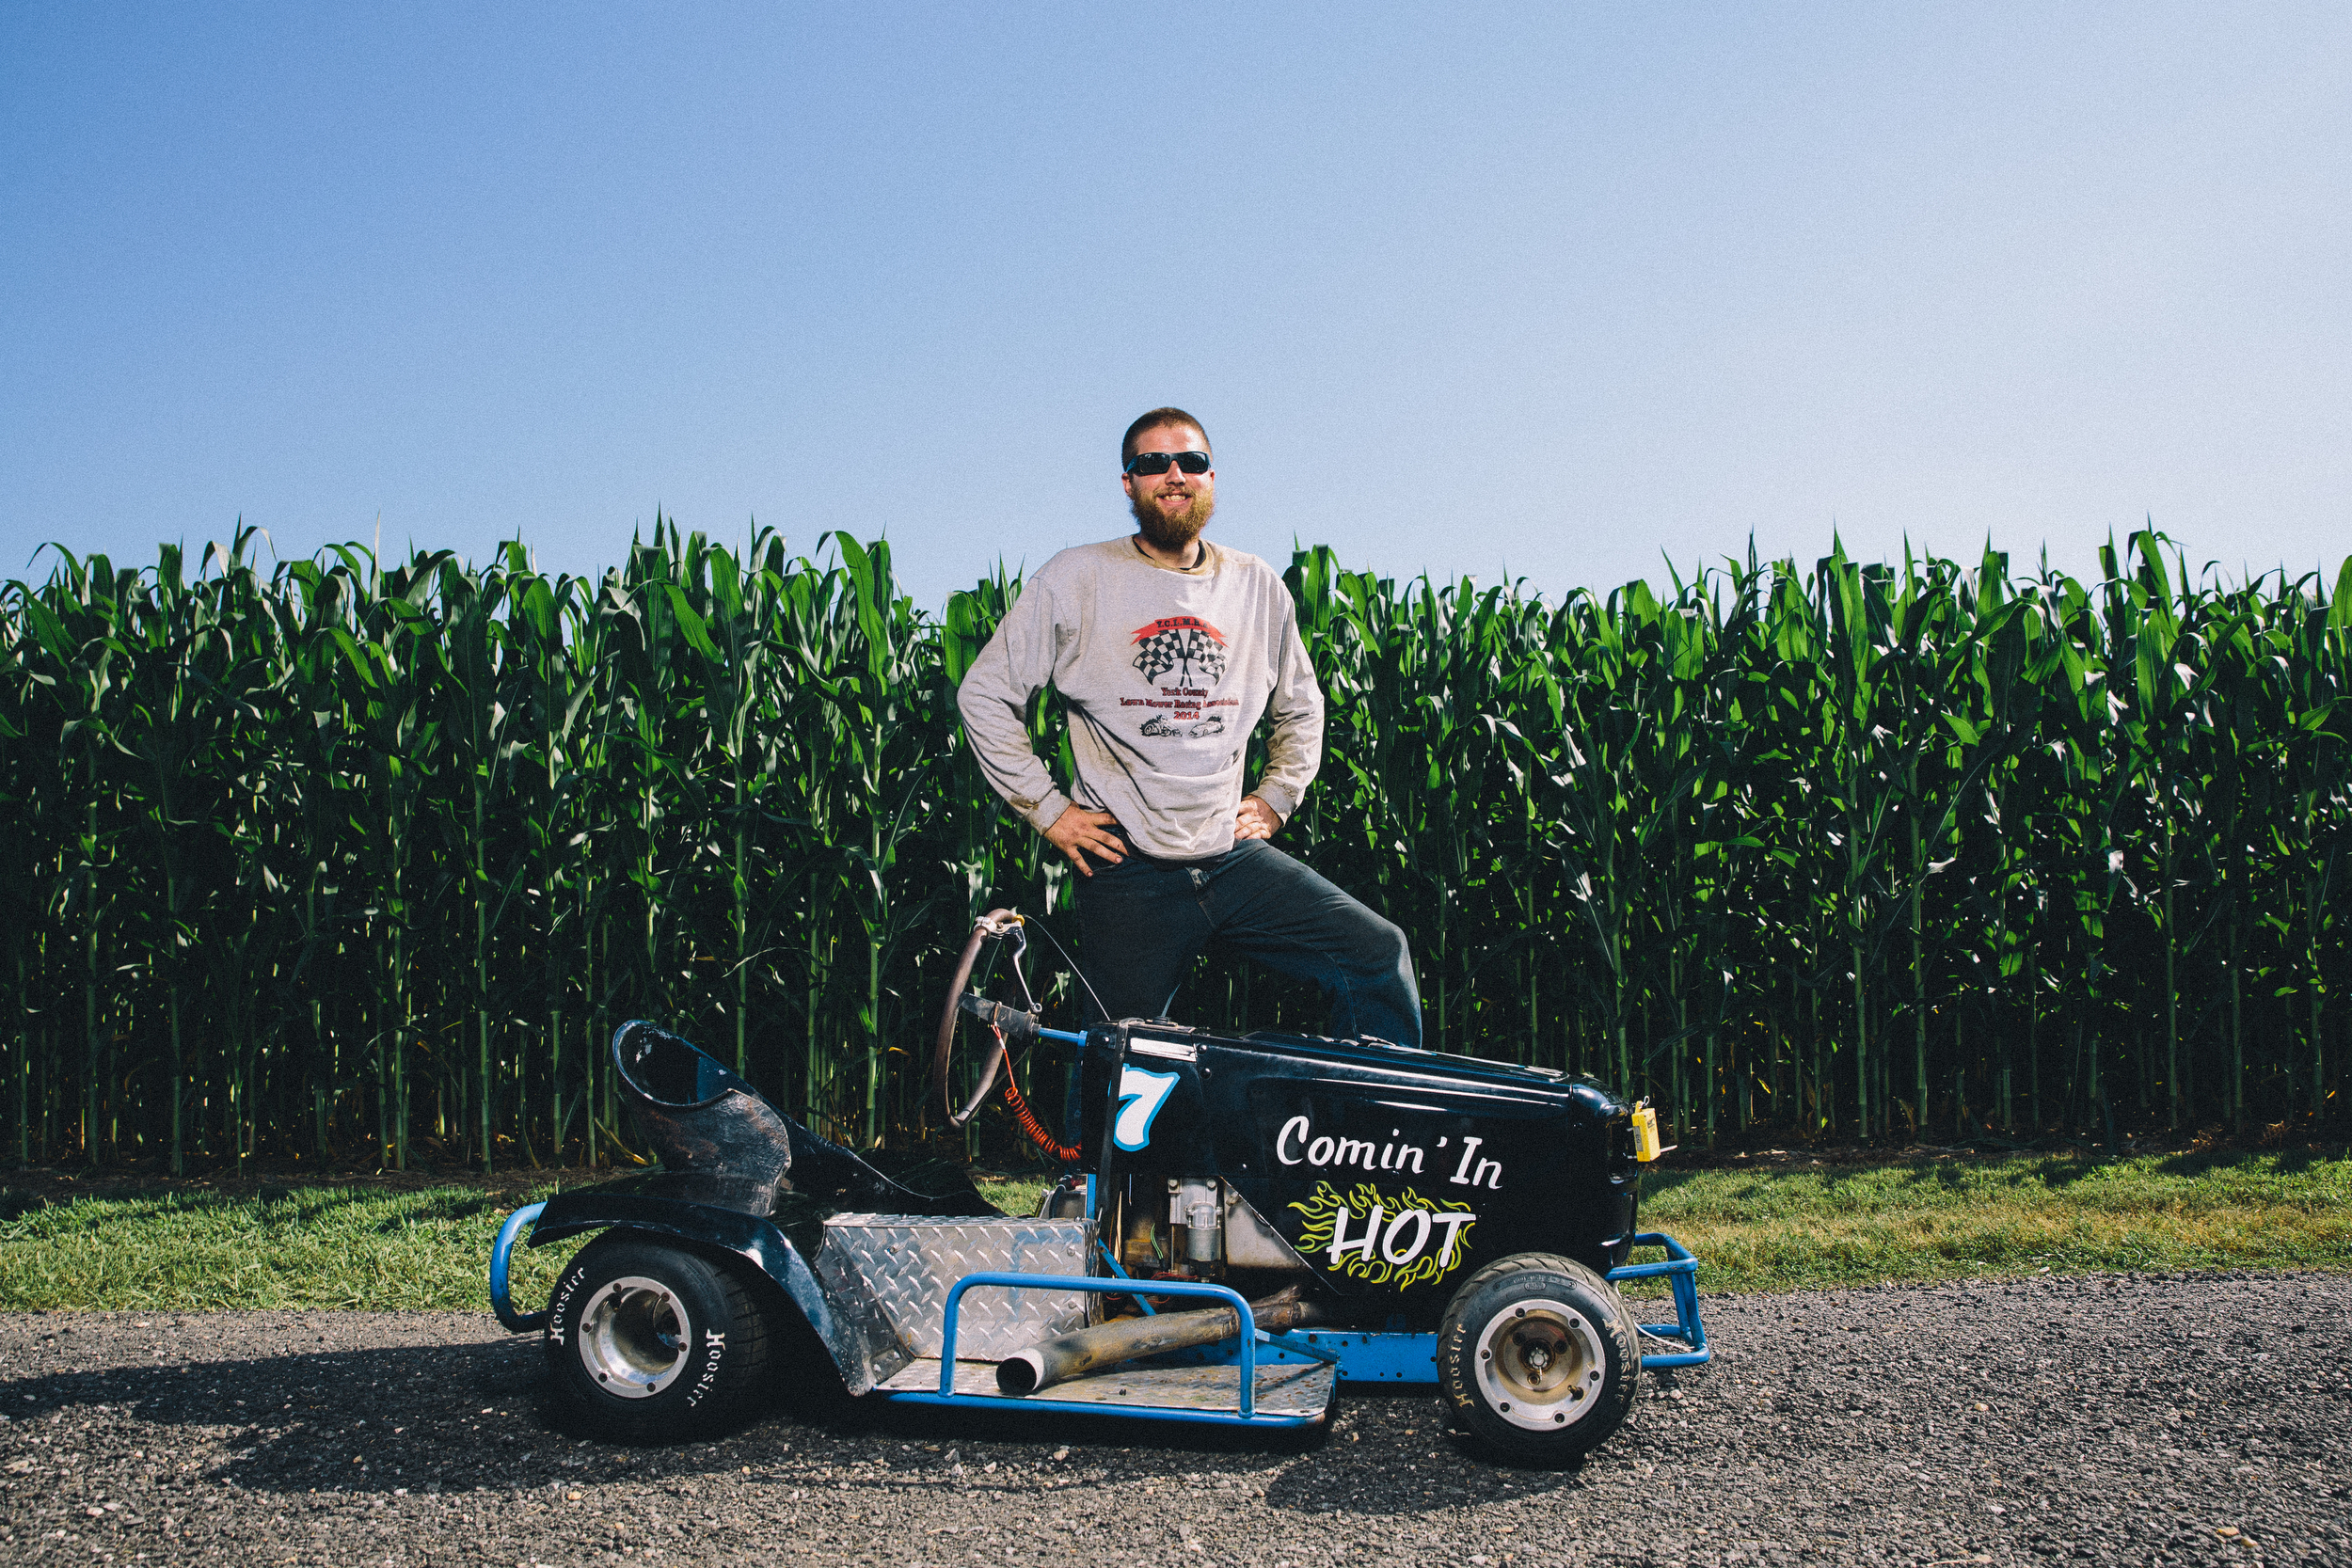 July 31, 2015 and Aug 1, 2015; Clements, MD, USA; Portrait series from the STA-BIL National Lawn Mower Racing Series at Bowles Farm in Clements, MD. Racers posed for portraits, before and during practice heats. Racers competed in at least 10 different mower classes on a 700 ft long dirt track. The course is surrounded by cornfields. 